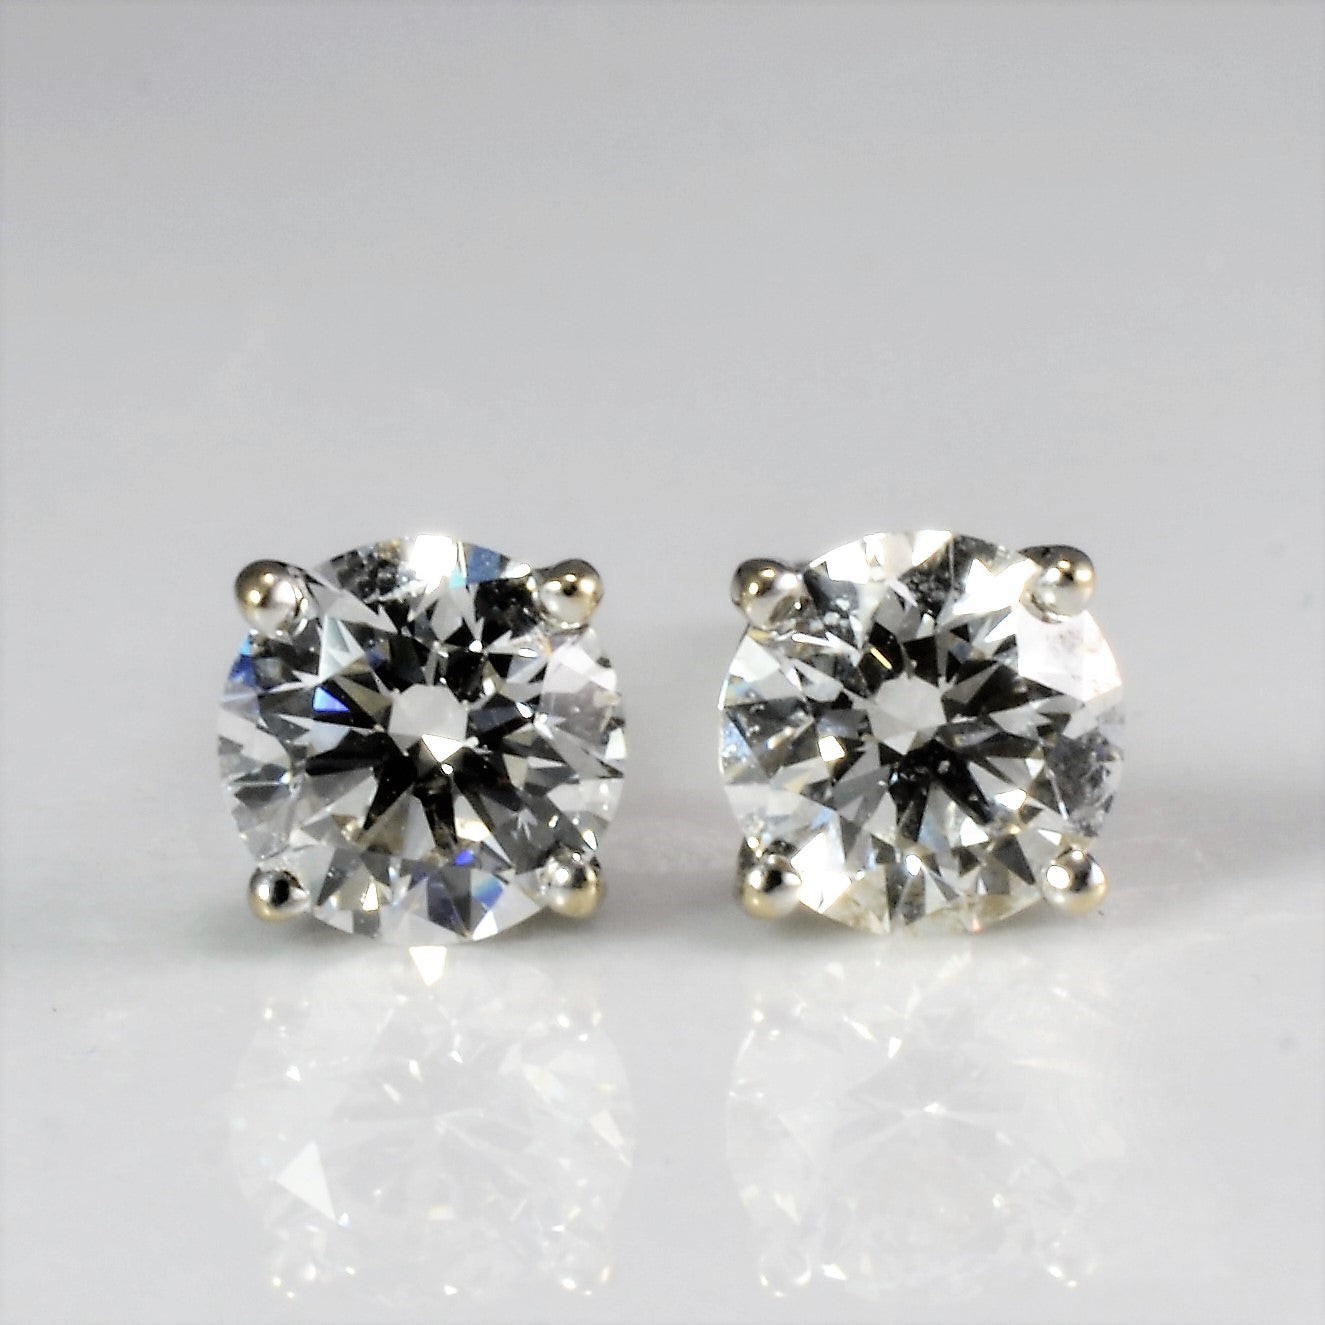 """Birks"" Prong Set Diamond Stud Earrings 